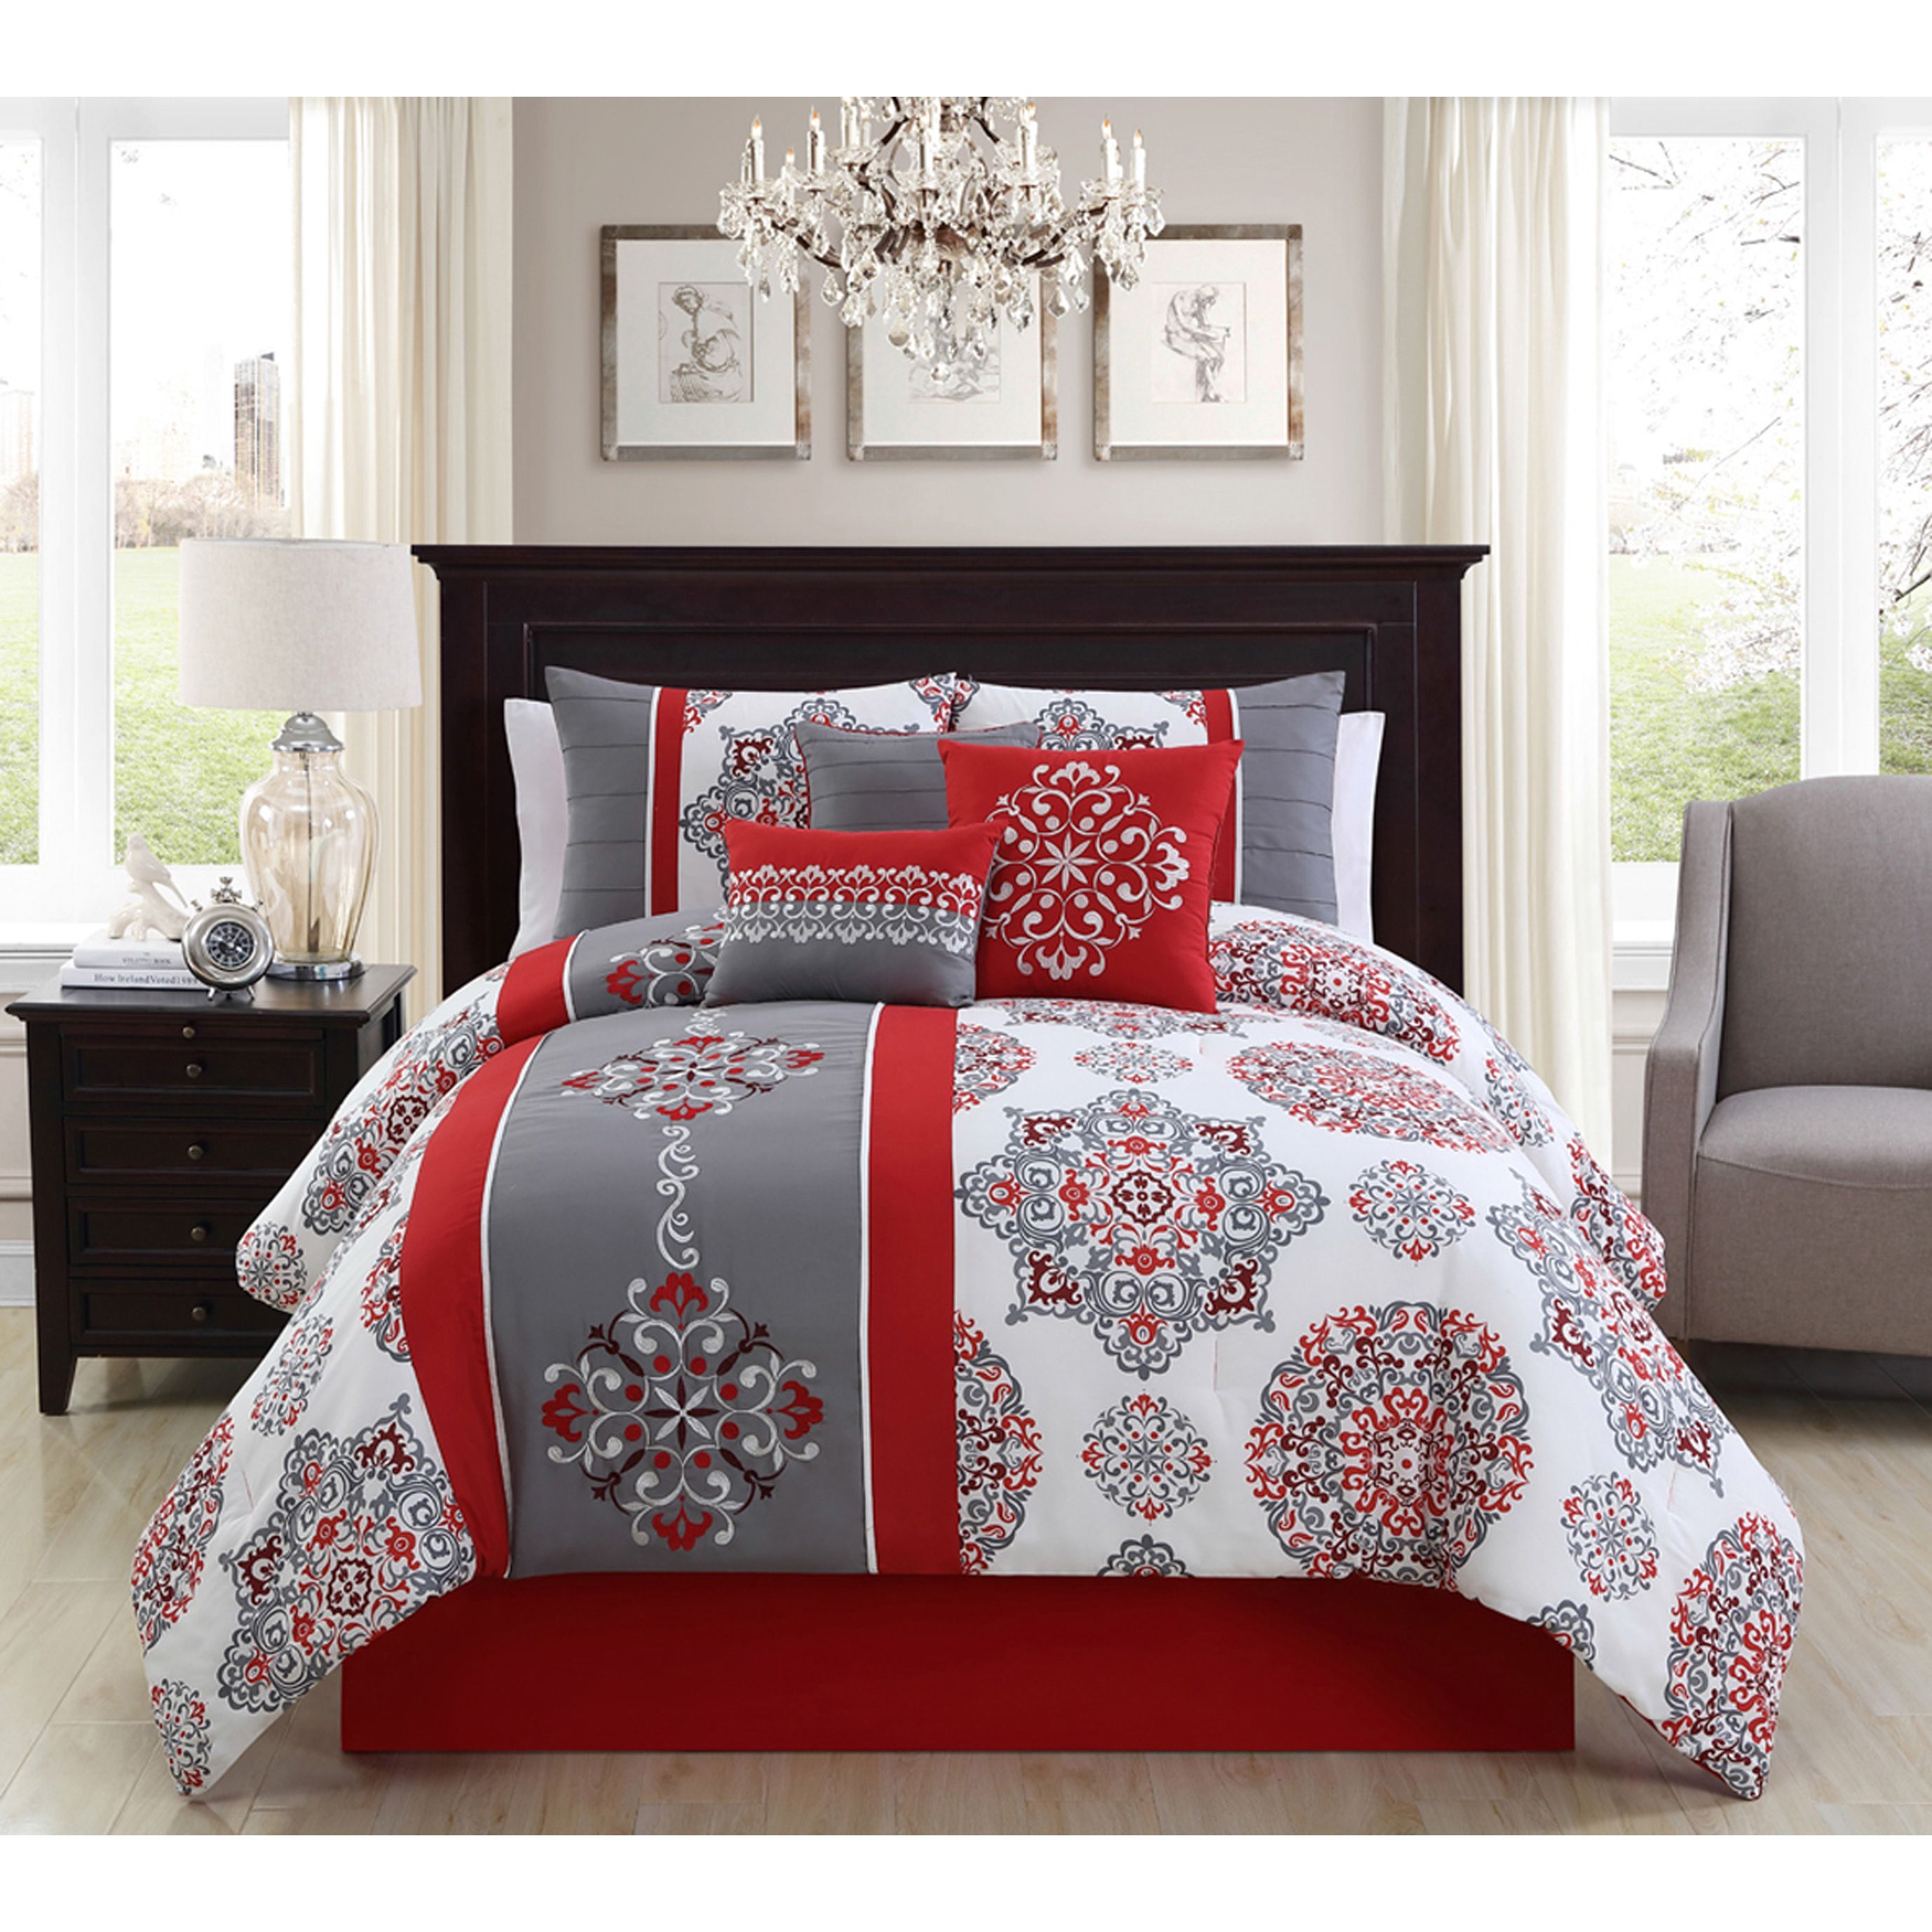 Fabulous Betsey Johnson Rock Out Comforter Set from Beddingstyle.com  OG55